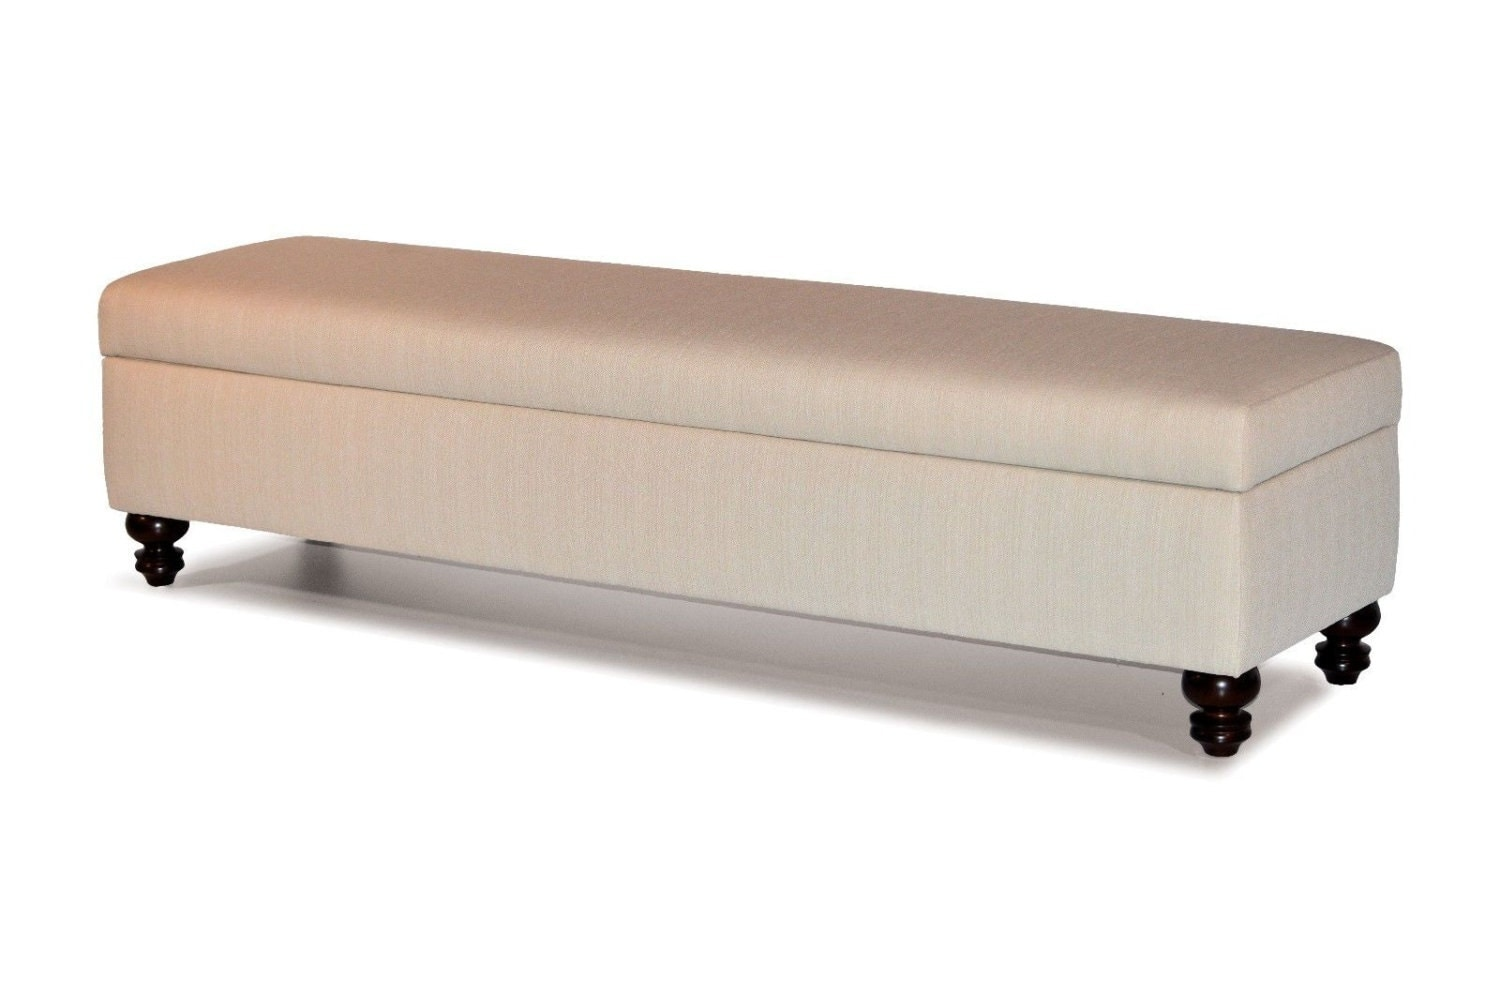 Natural Color Fabric Upholstered Storage Bench Ottoman Bed